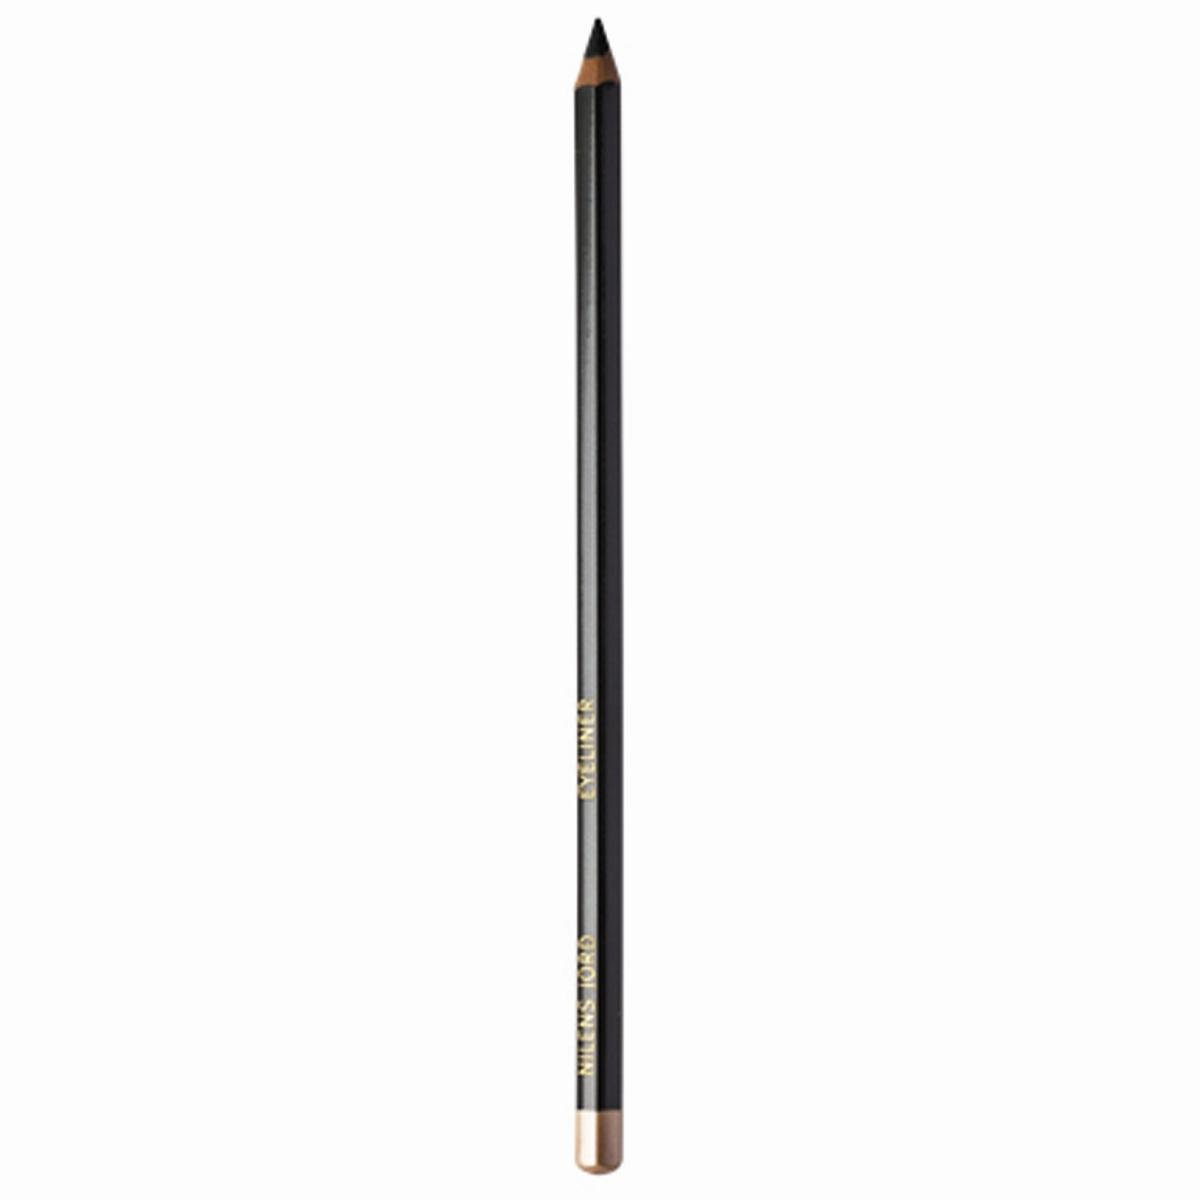 Nilens Jord Green Eyeliner Pencil